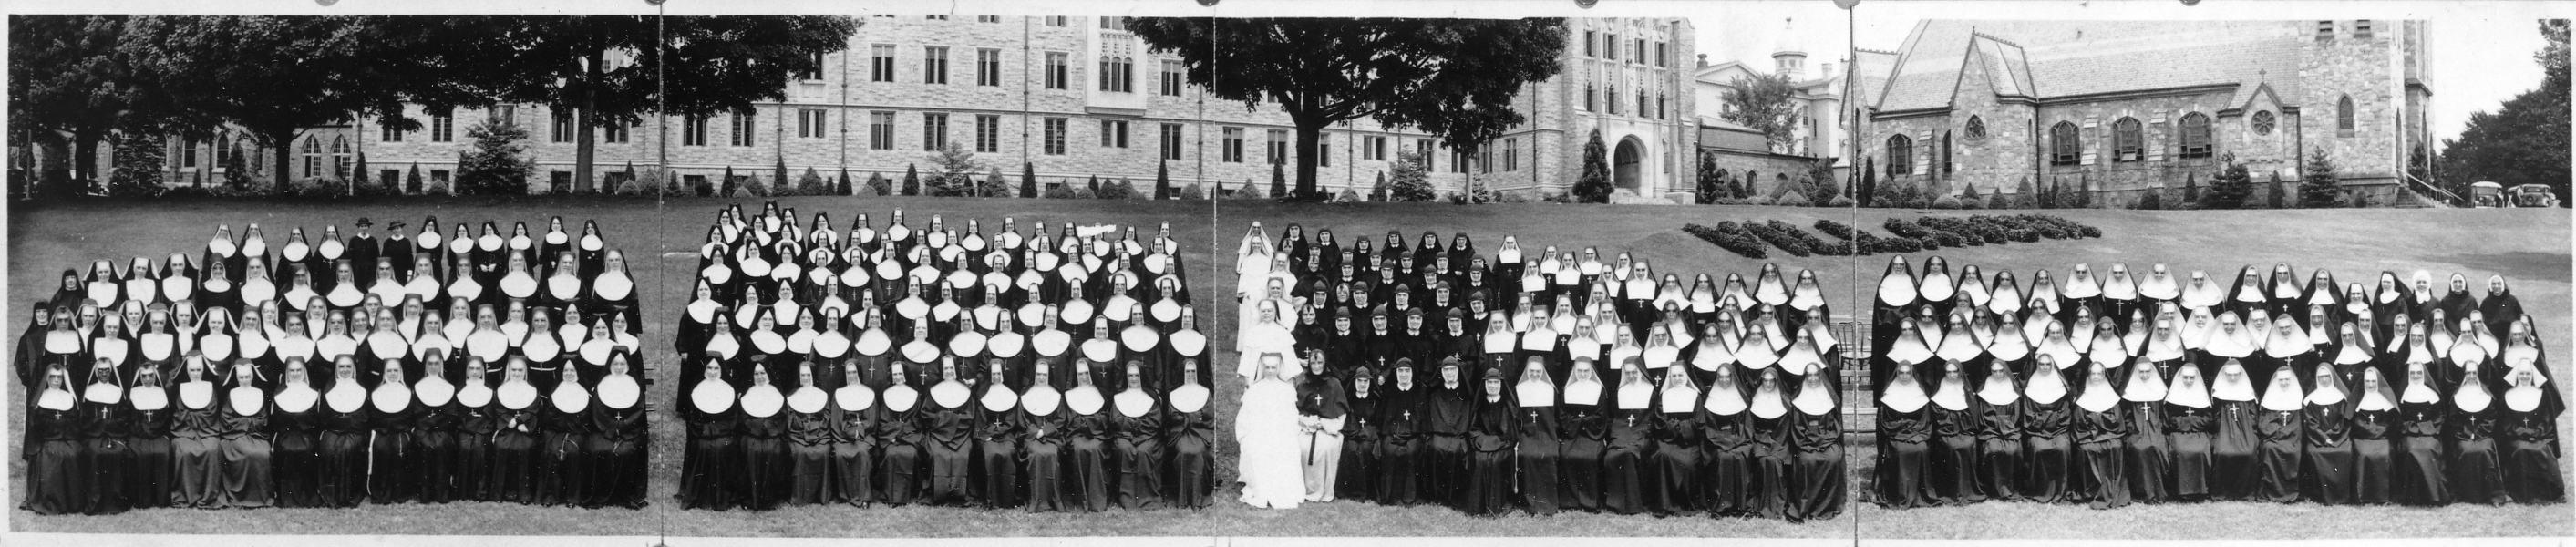 Nuns at Villanvoa Summer School